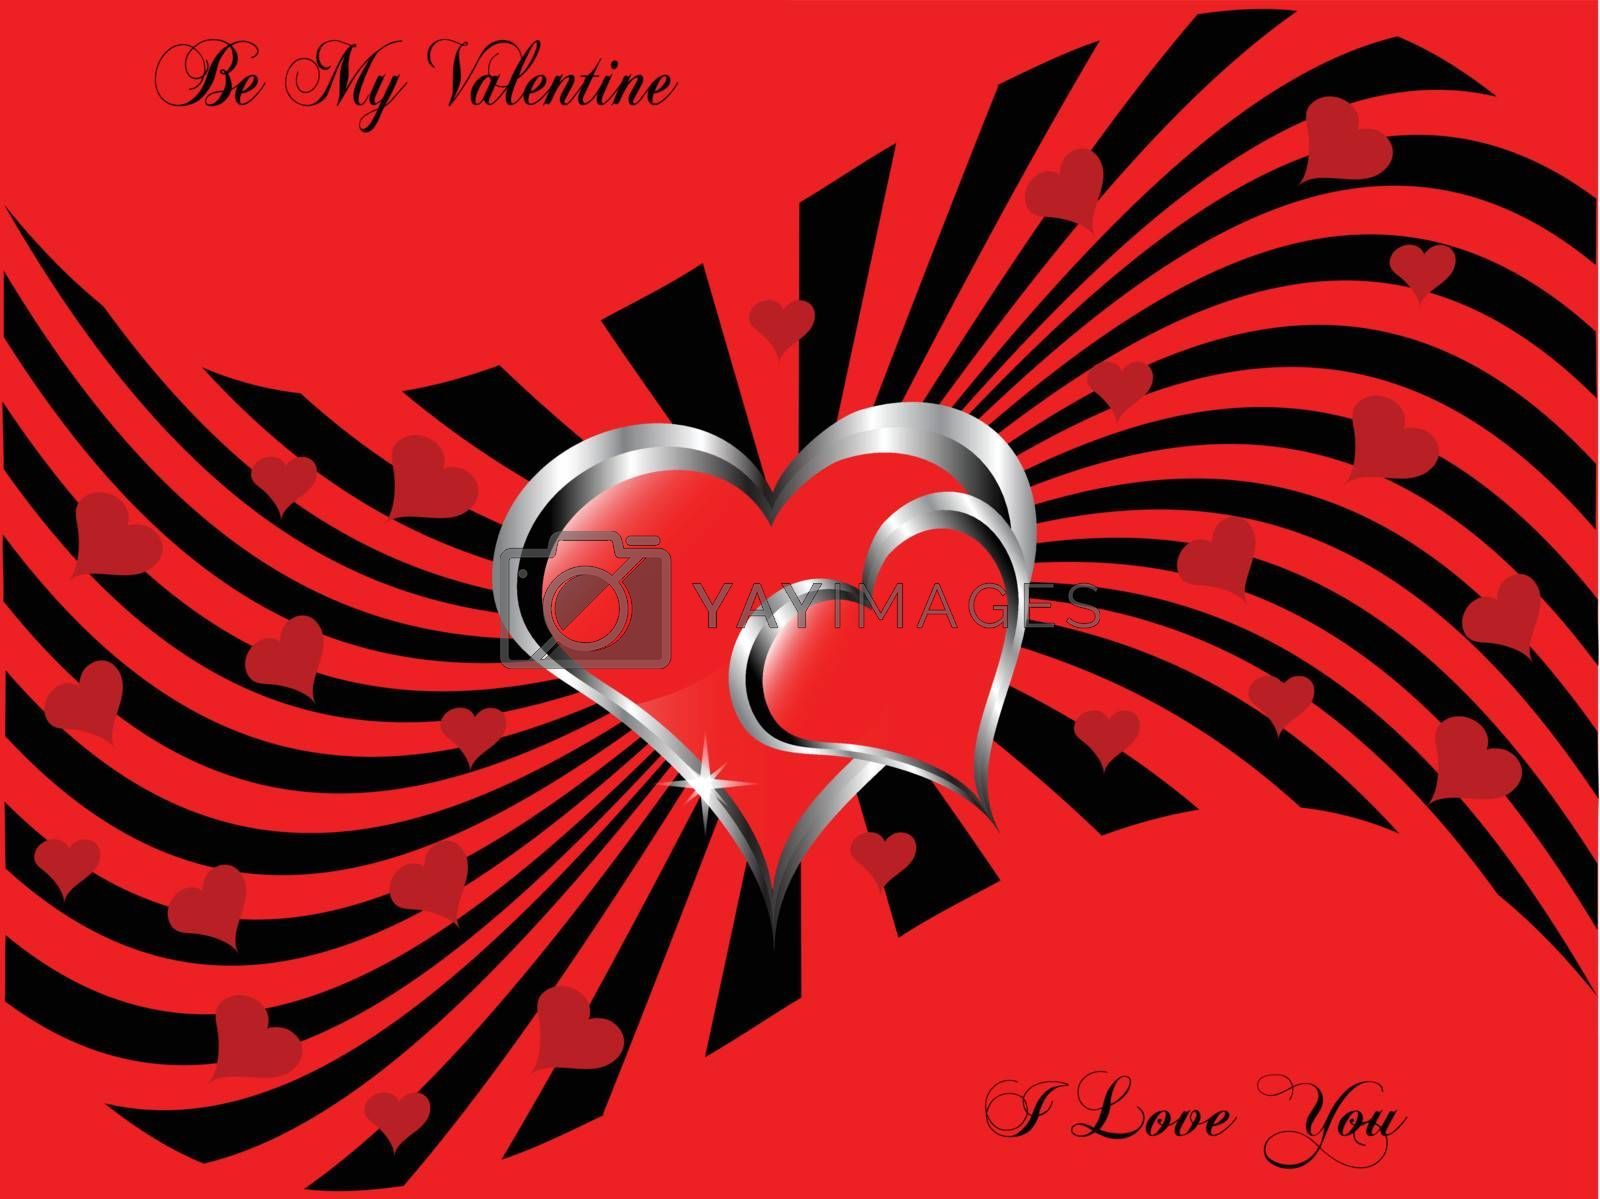 A vector valentines background with a large central hearts on a  red and black pattern